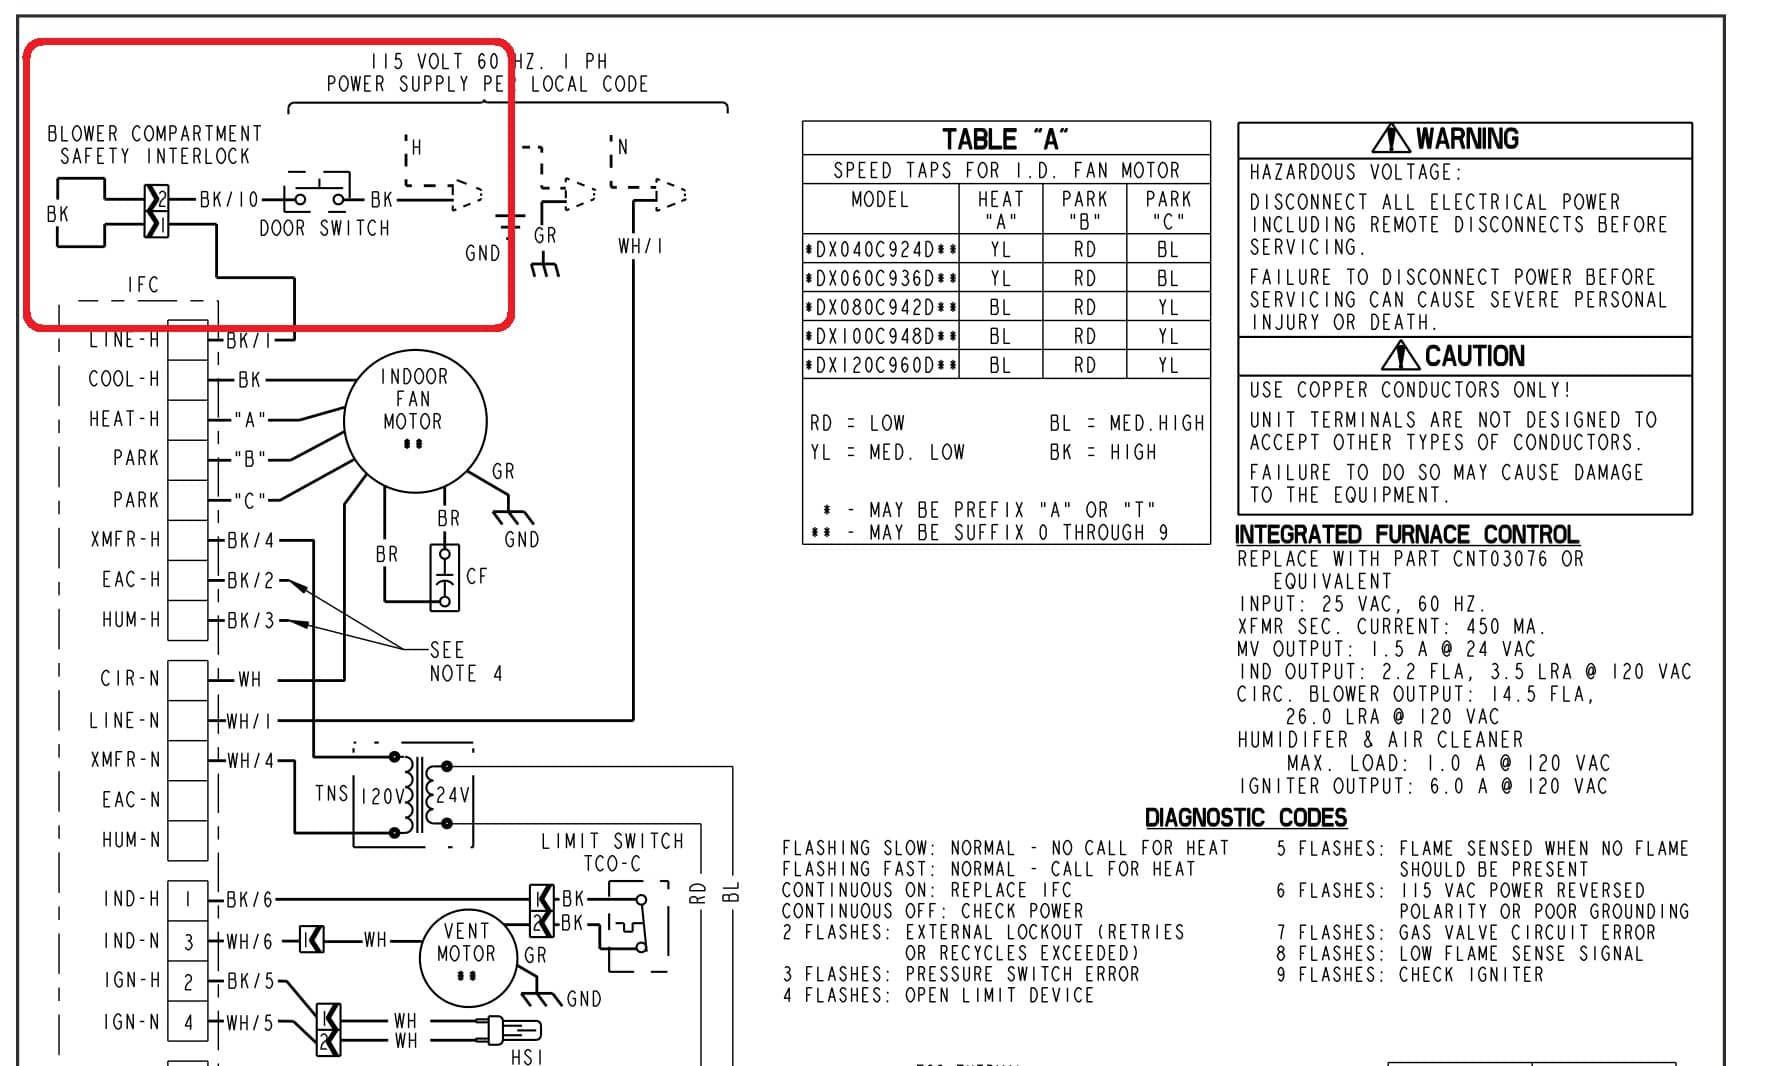 hight resolution of trane xr90 wiring diagram wiring diagram third level rh 9 13 11 jacobwinterstein com trane wiring ecm schematics diagrams trane wiring schematics diagrams